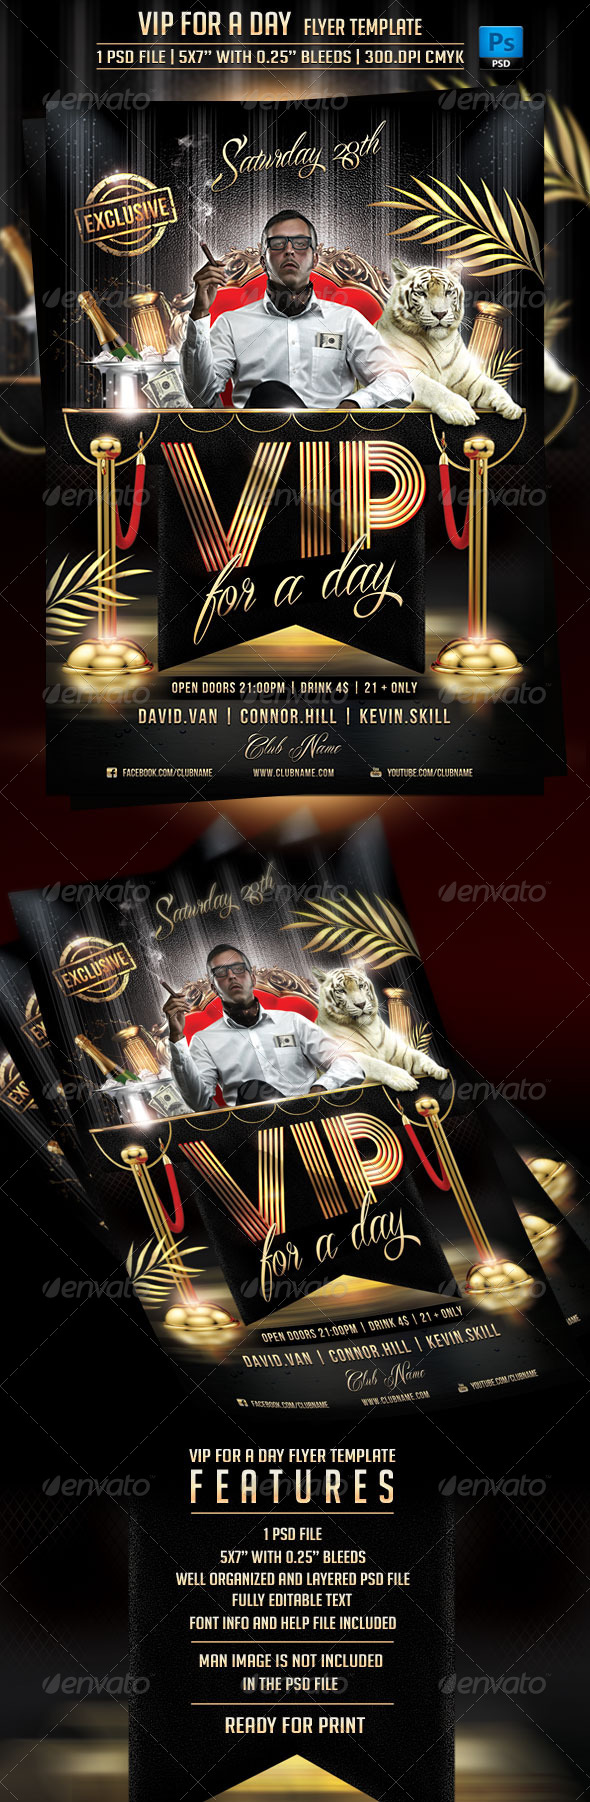 VIP For a Day Flyer Template - Flyers Print Templates